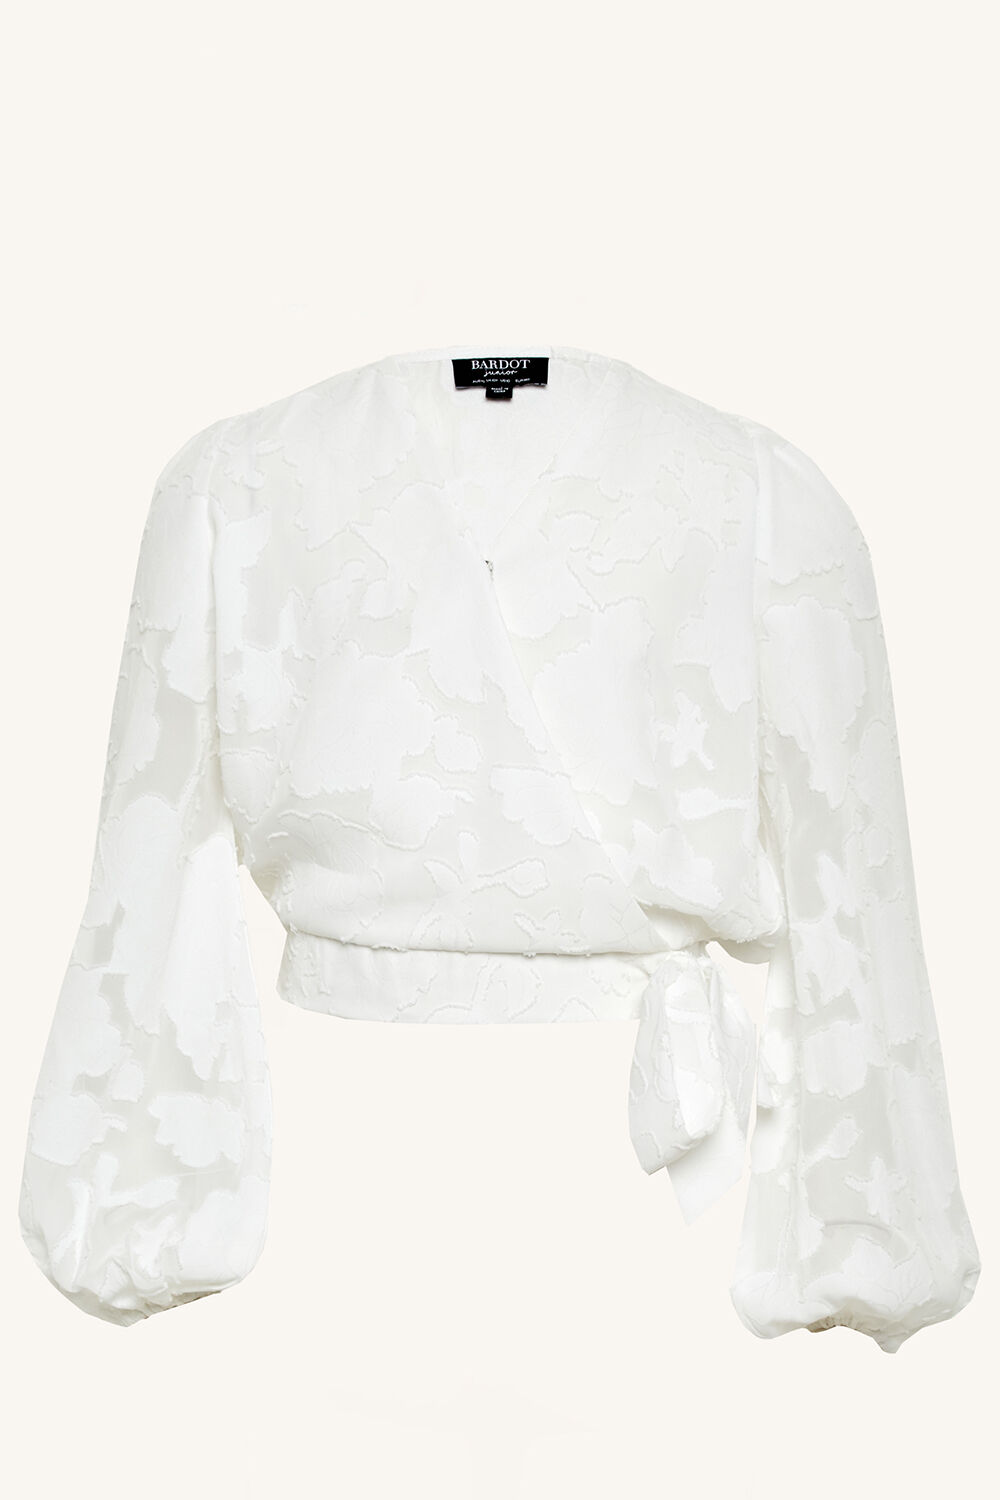 ELEANOR TOP in colour BRIGHT WHITE